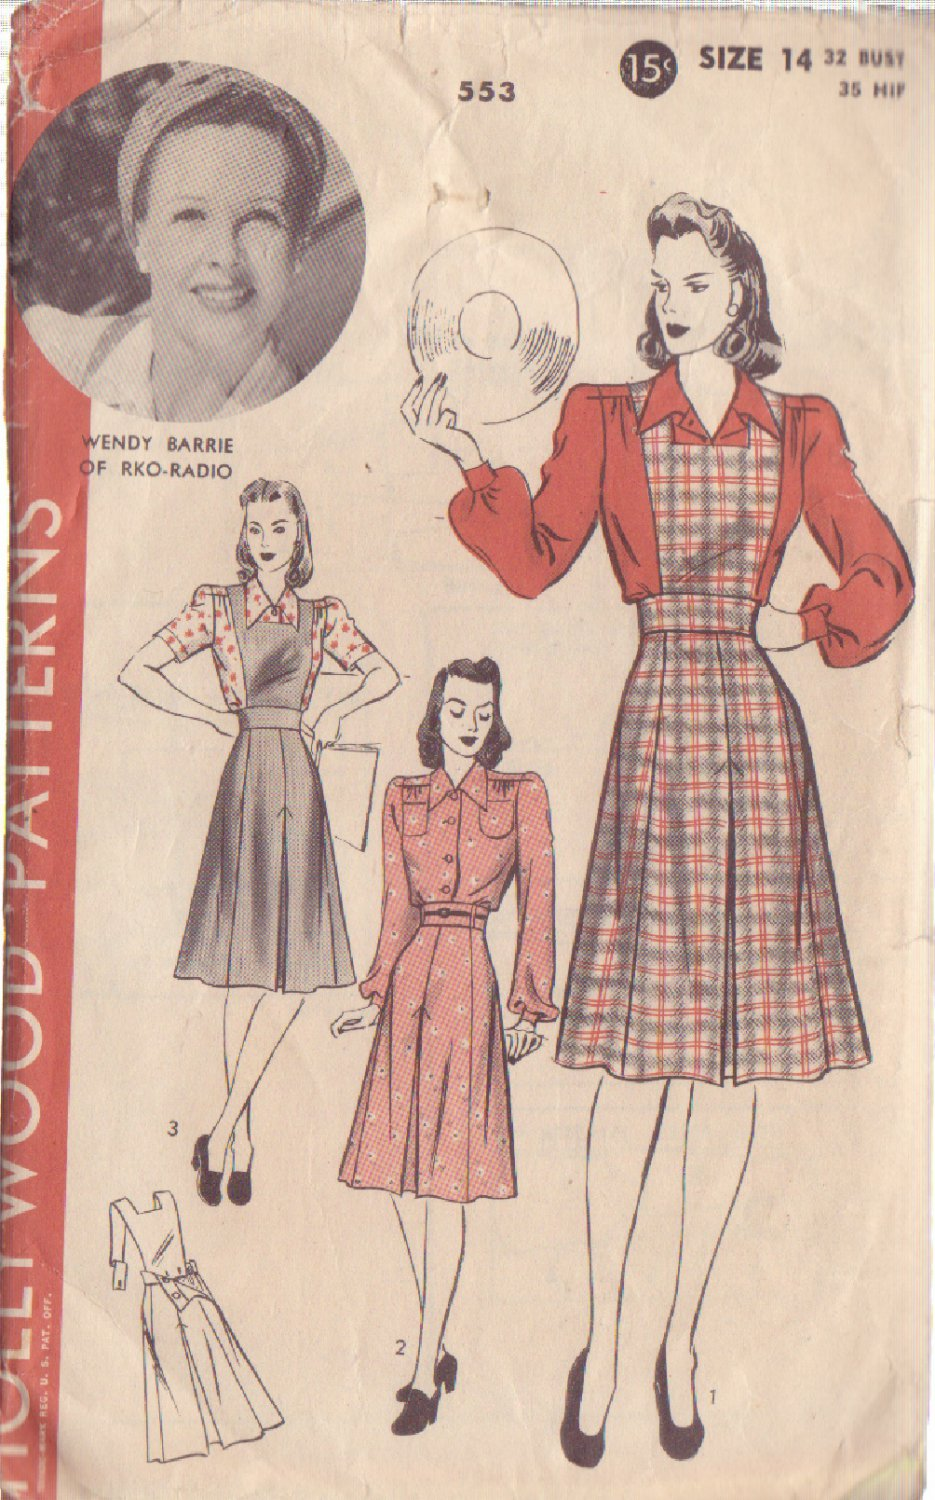 HOLLYWOOD PATTERN 553 MISSES� JUMPER, SKIRT, BLOUSE SIZE 14 WENDY BARRIE